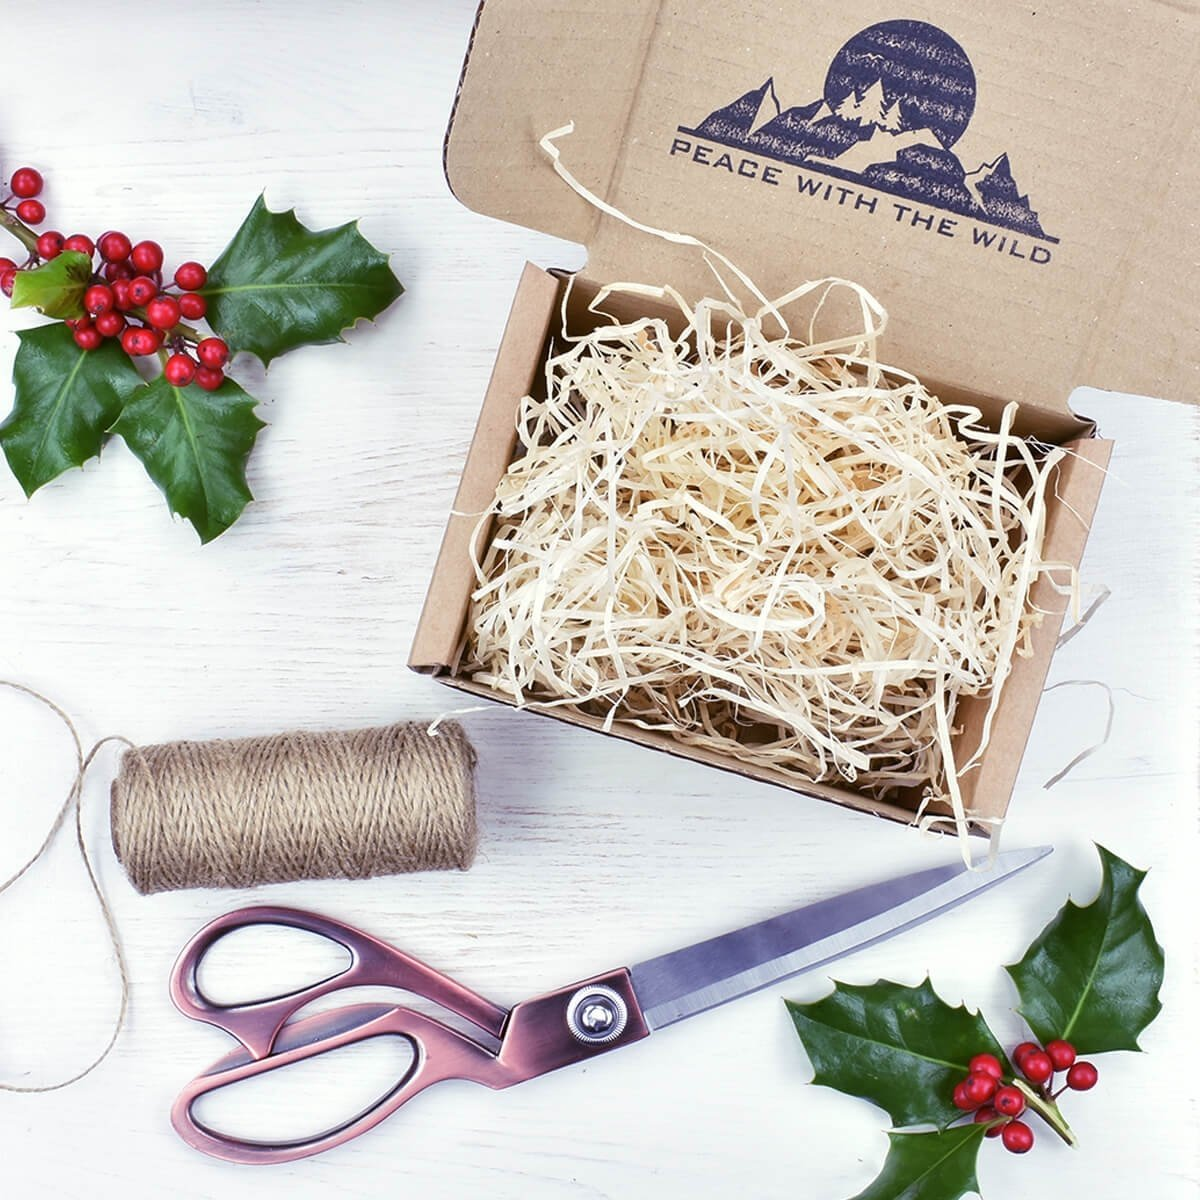 Christmas gift wrapping peace with the wild cardboard gift box